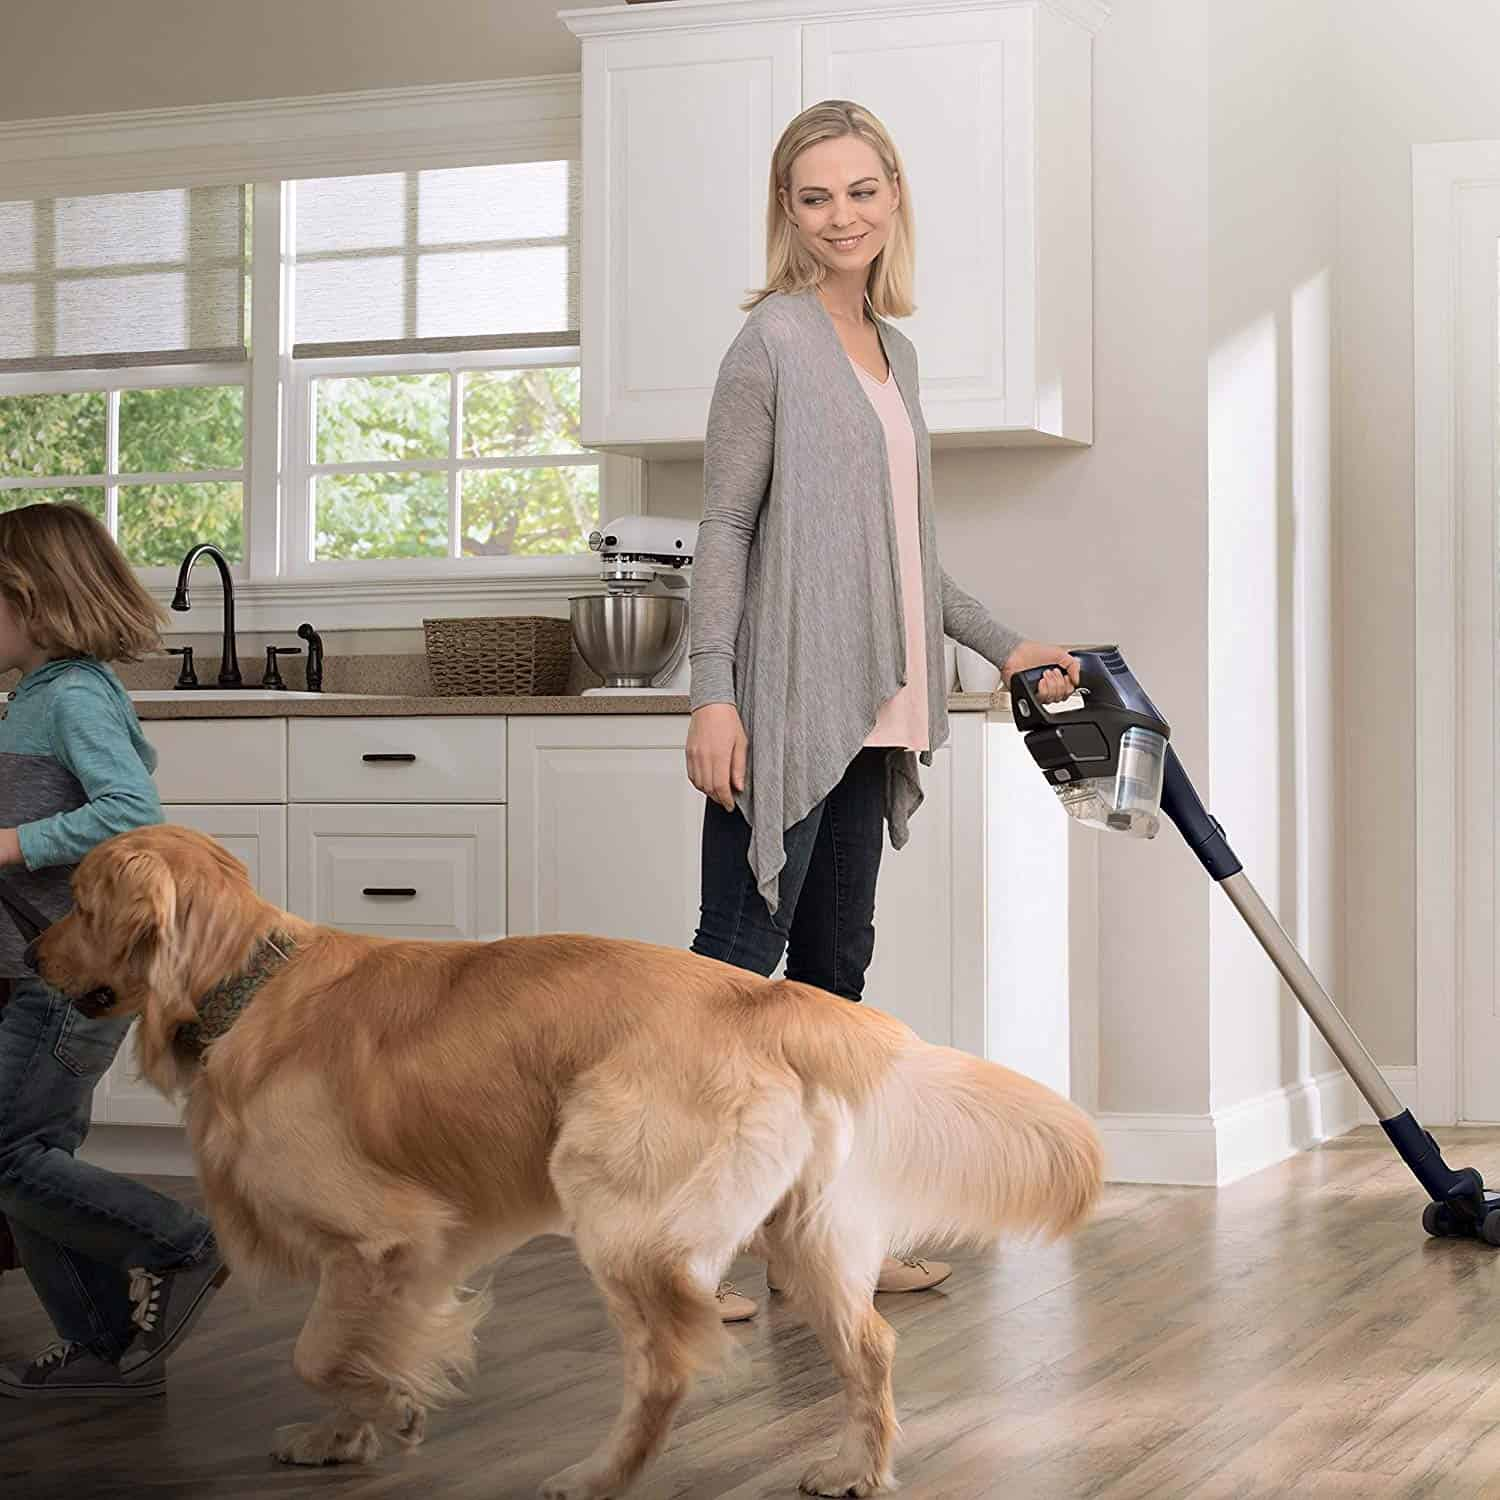 Hoover React Pet Review